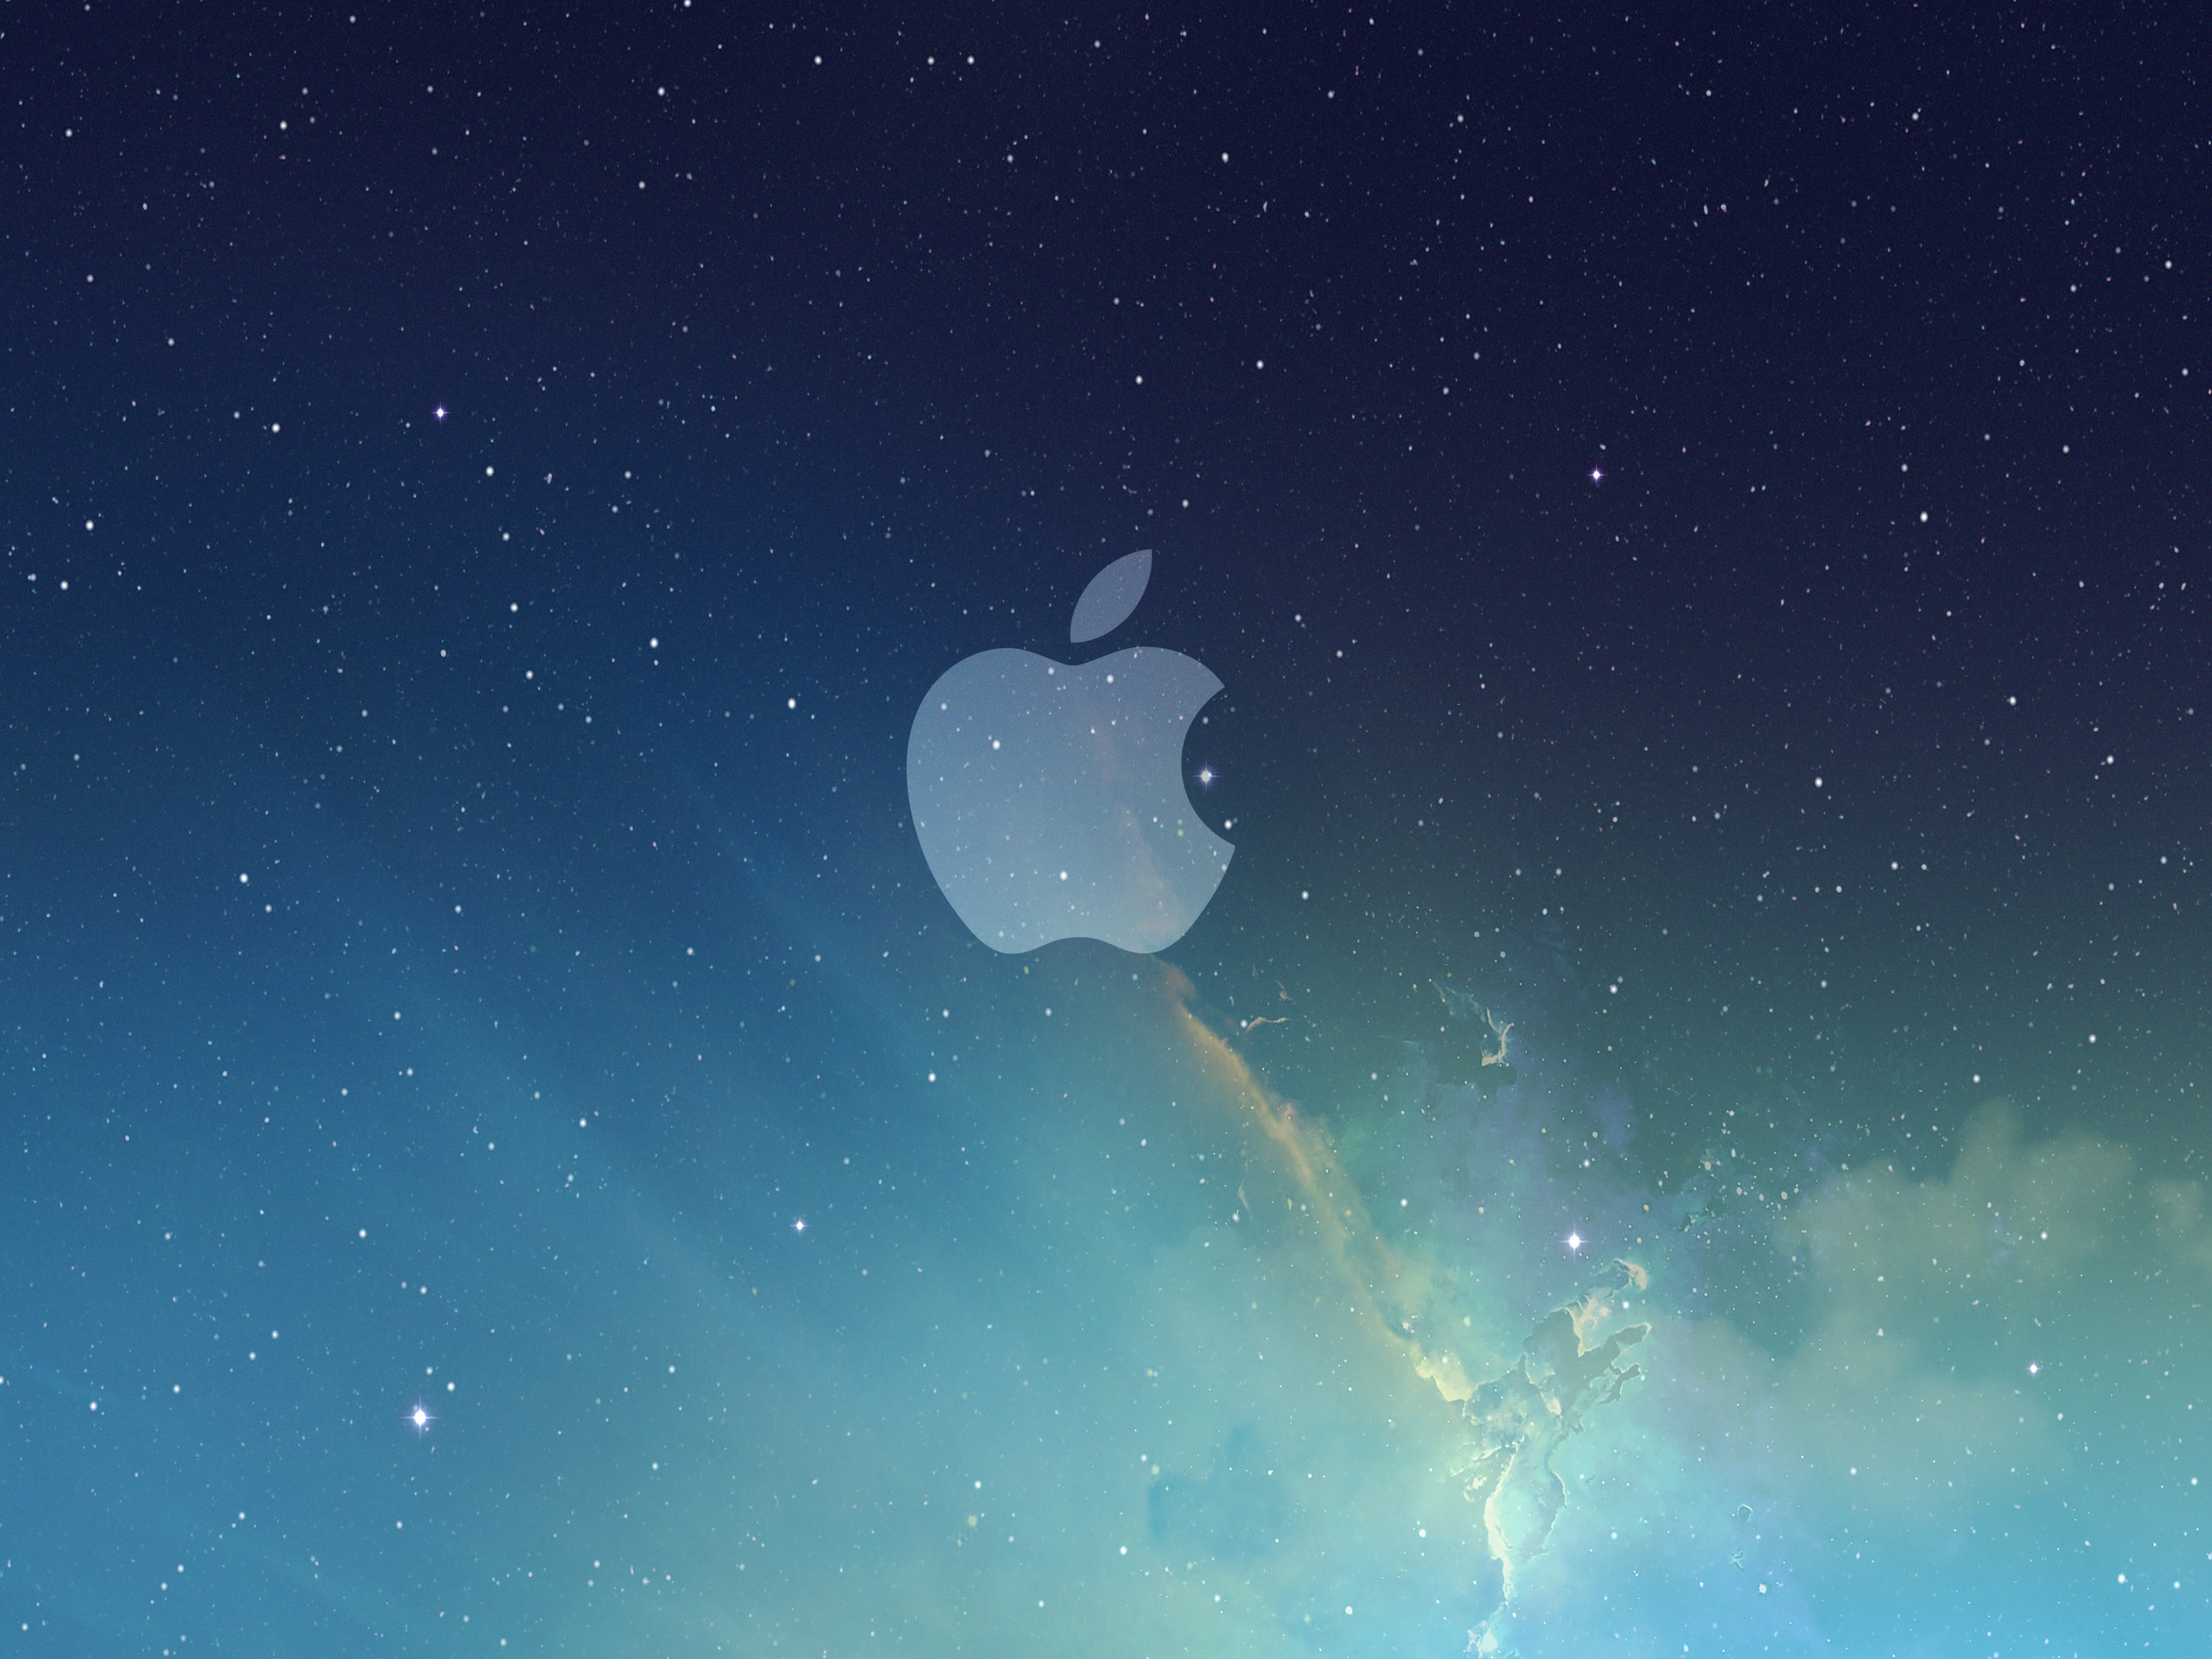 Apple Background Wallpapers, Pictures, Images